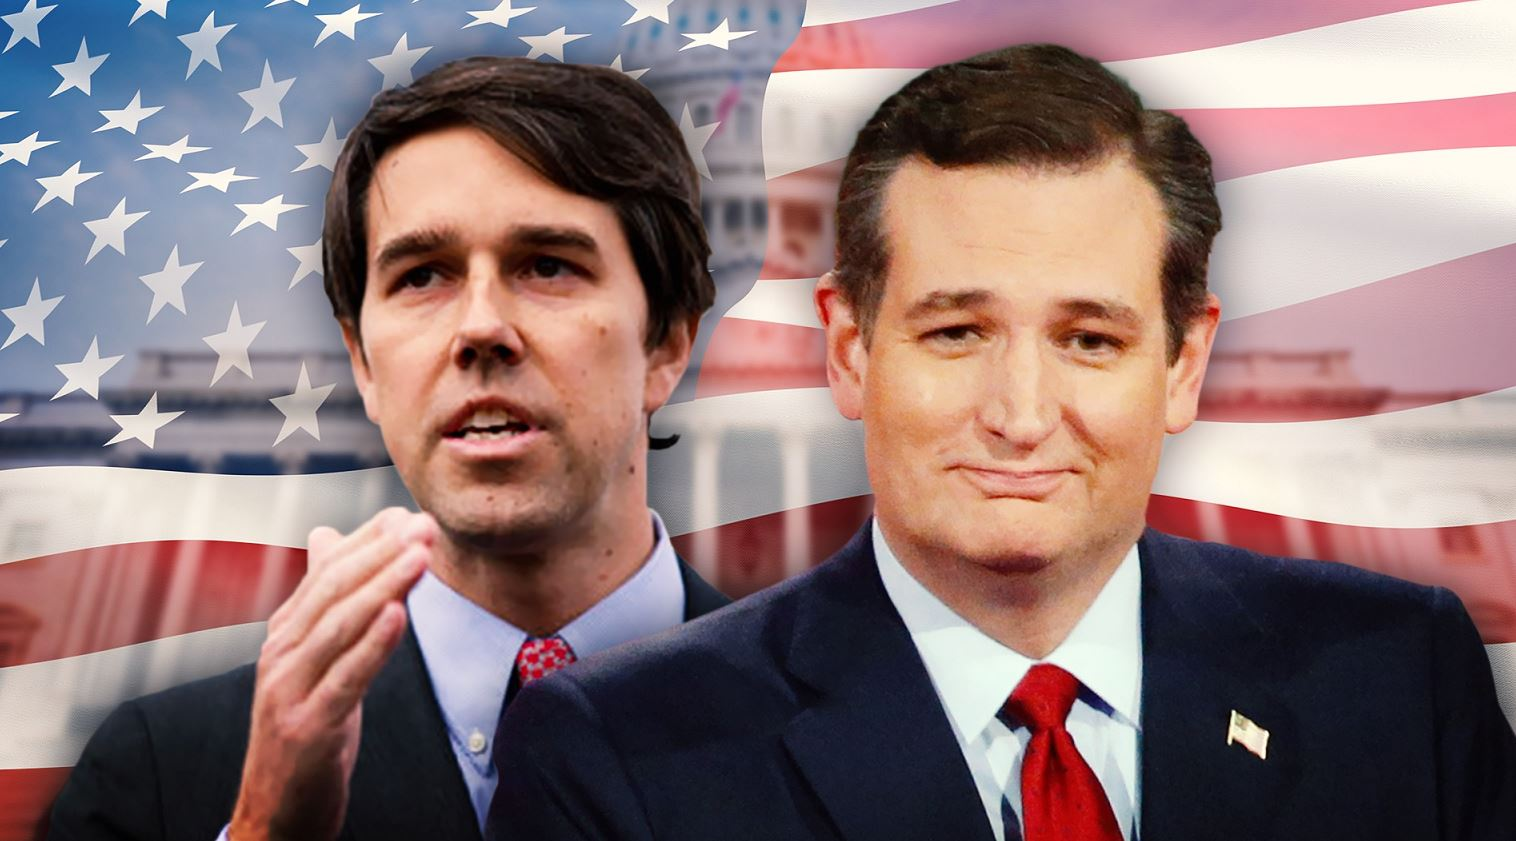 Cruz vs. O'Rourke_1523047643570.JPG.jpg